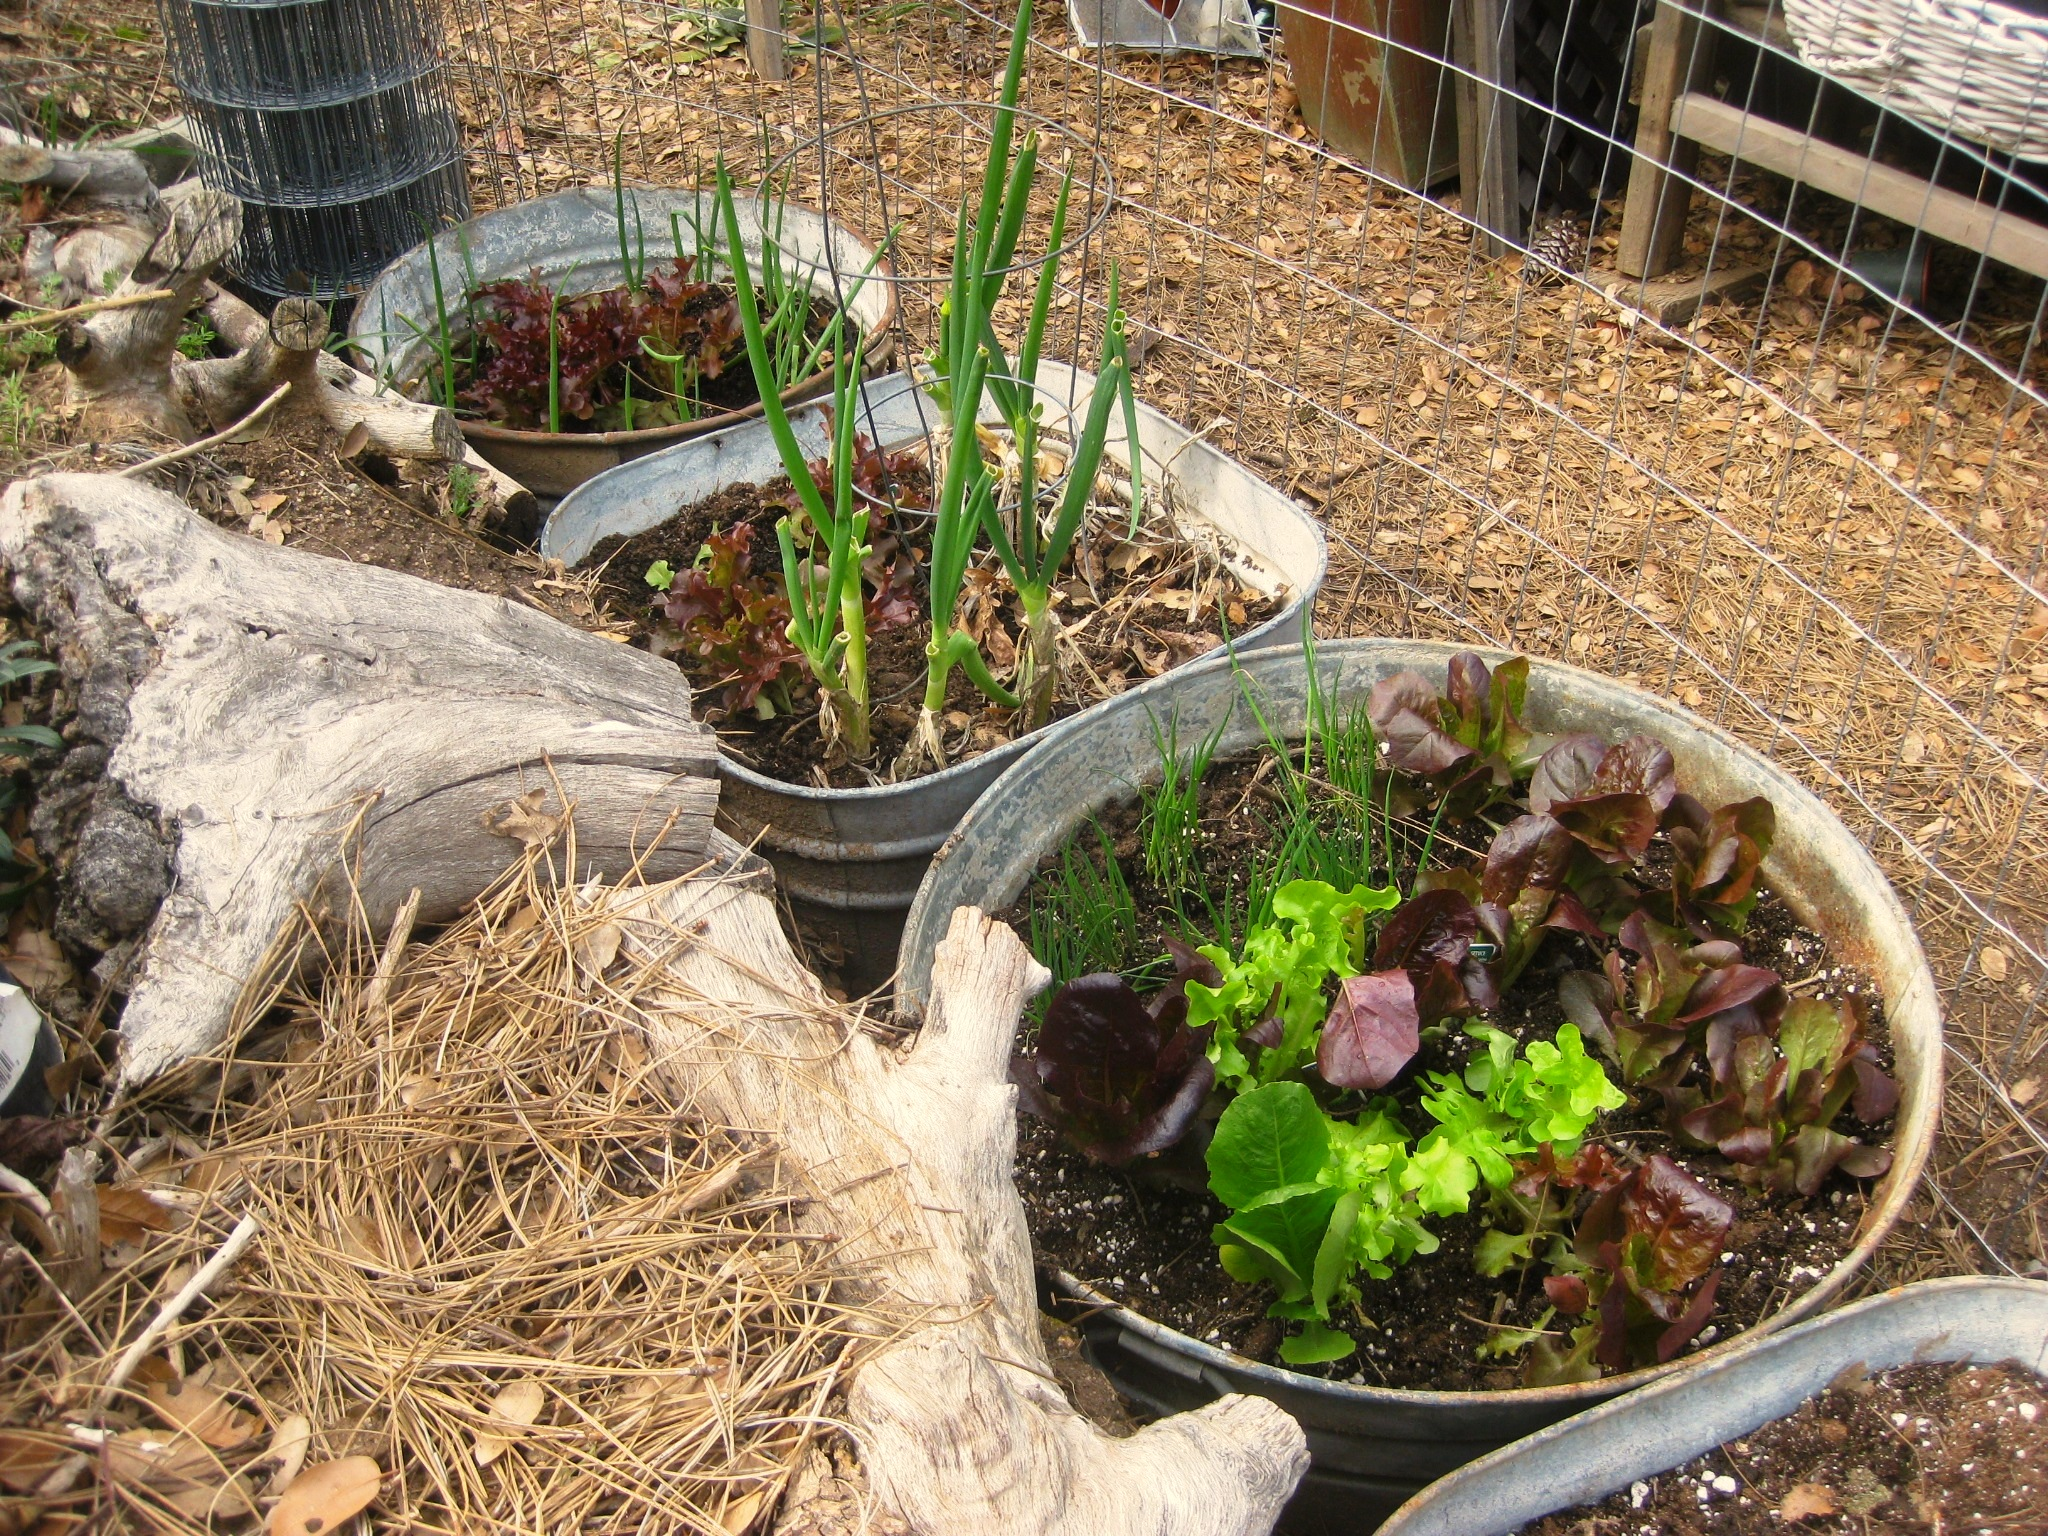 Three galvanized tubs provided enough vegetables for two, in a small space.